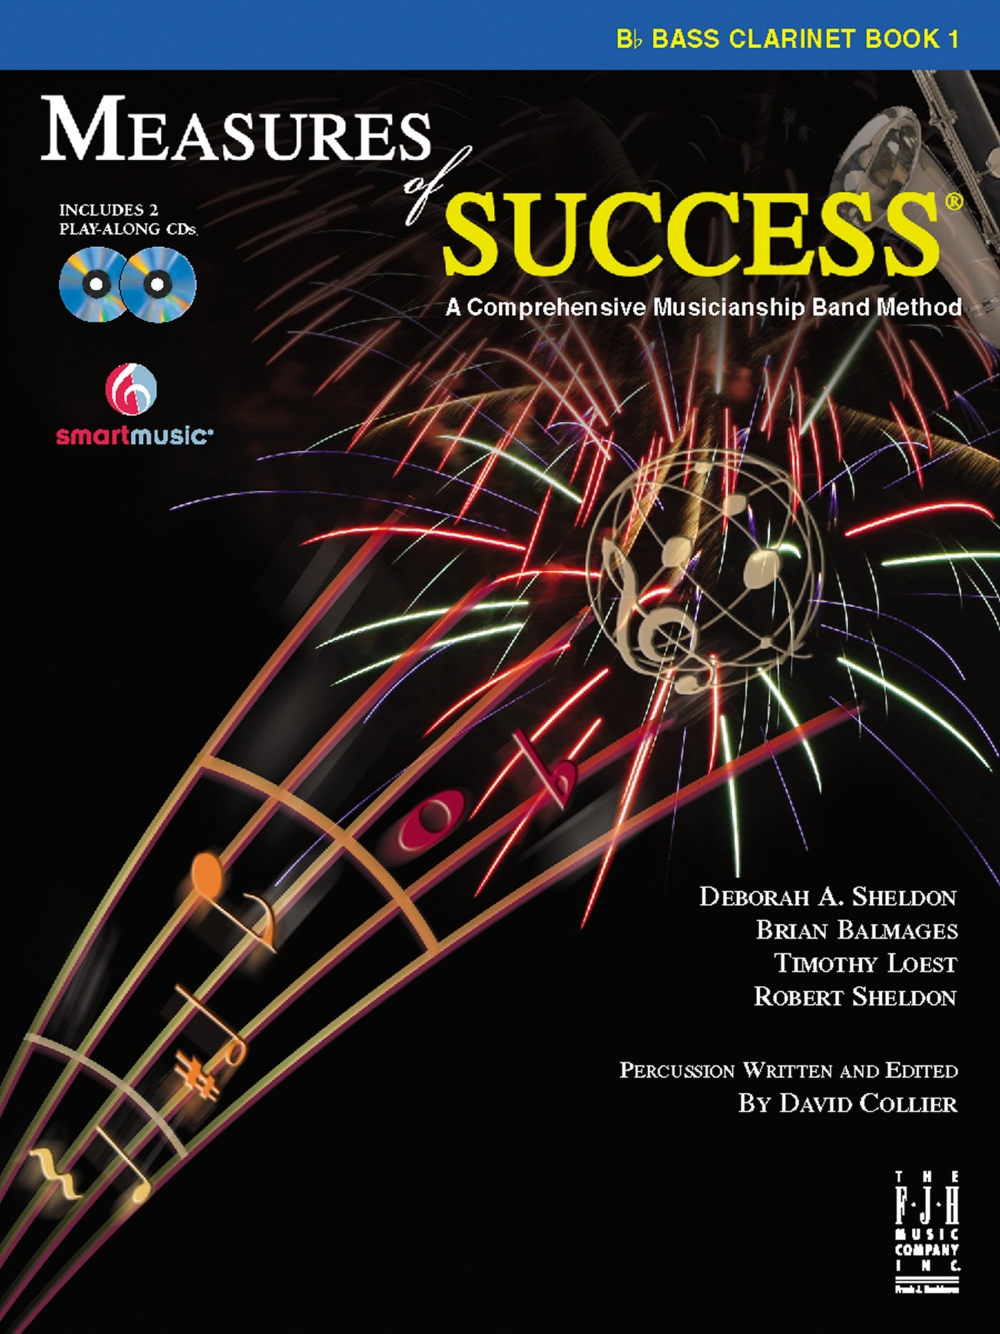 FJH Music Measures of Success Bass Clarinet Book 1 by